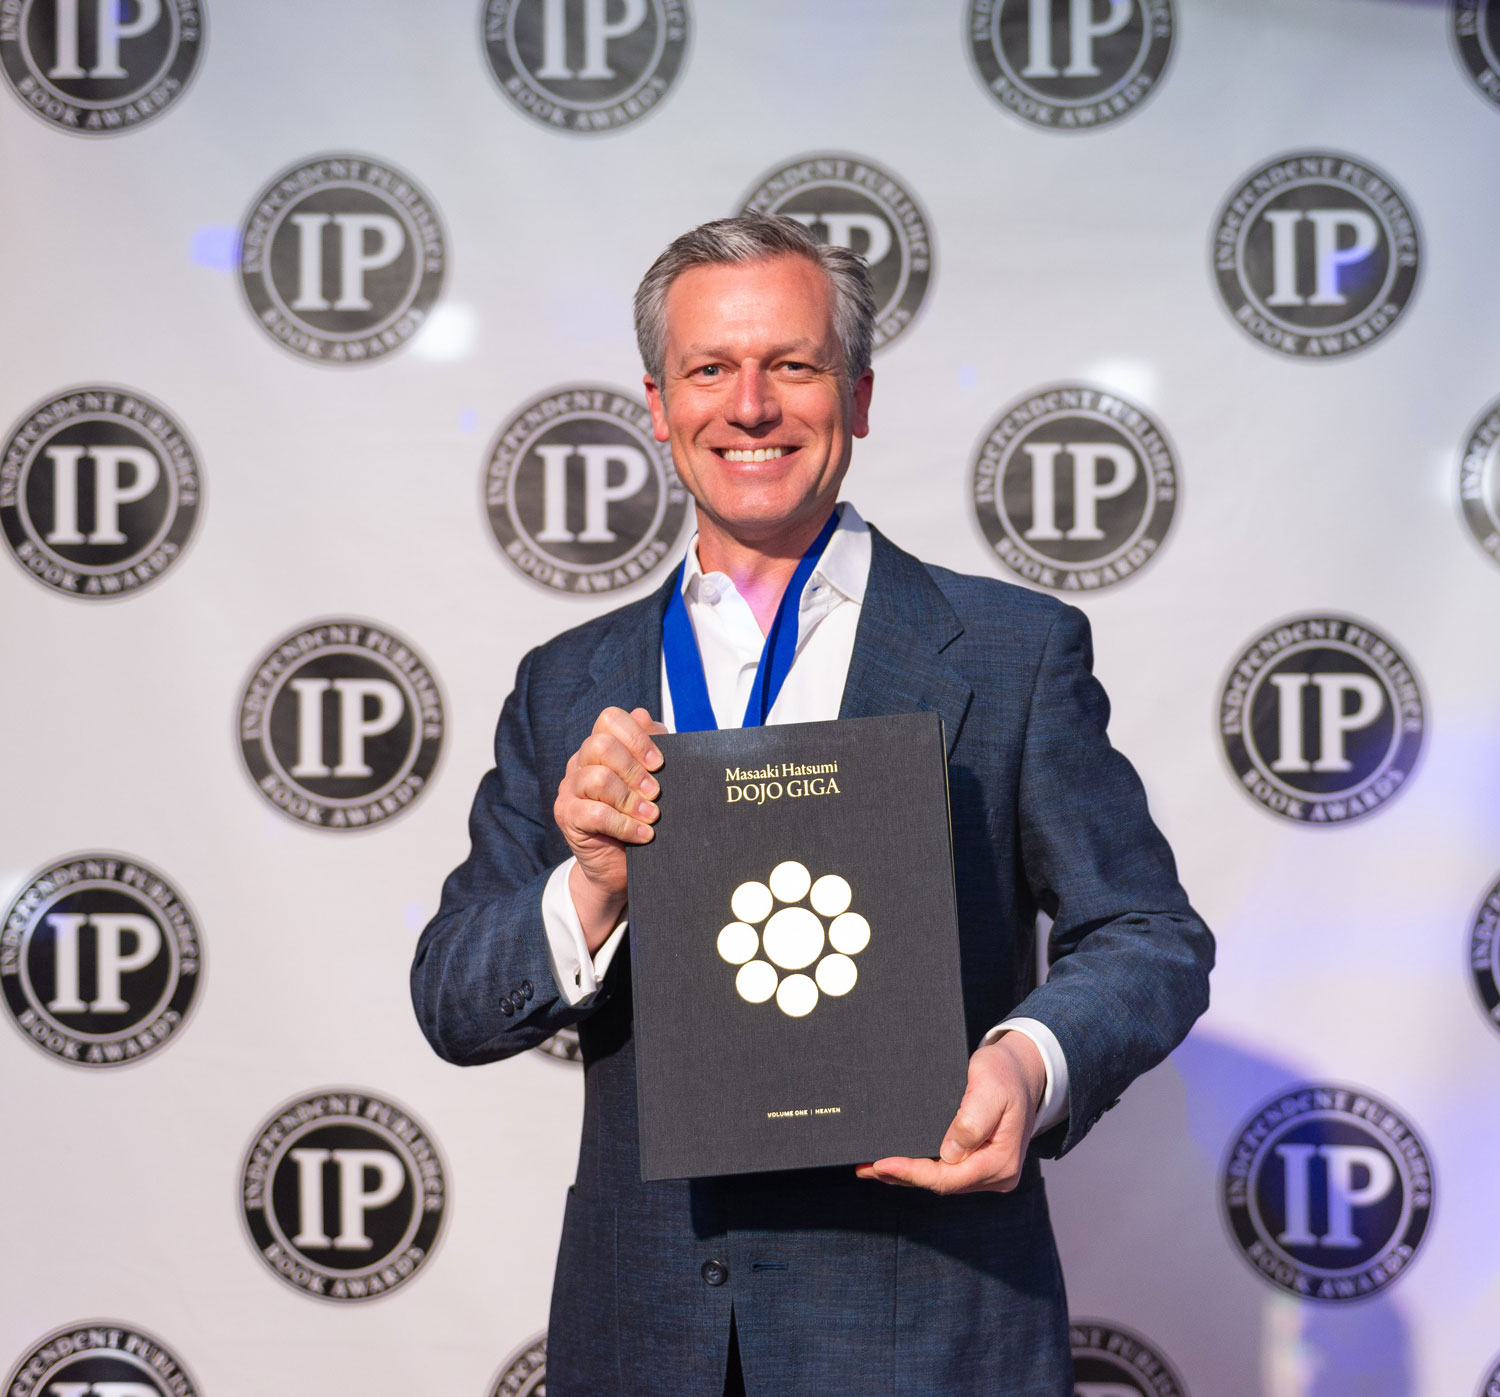 Steve Olsen (writer and publisher) traveled all the way from Japan to receive the gold medal at the 23rd annual Independent Publisher Book Awards ceremony in New York City on May 28, 2019.